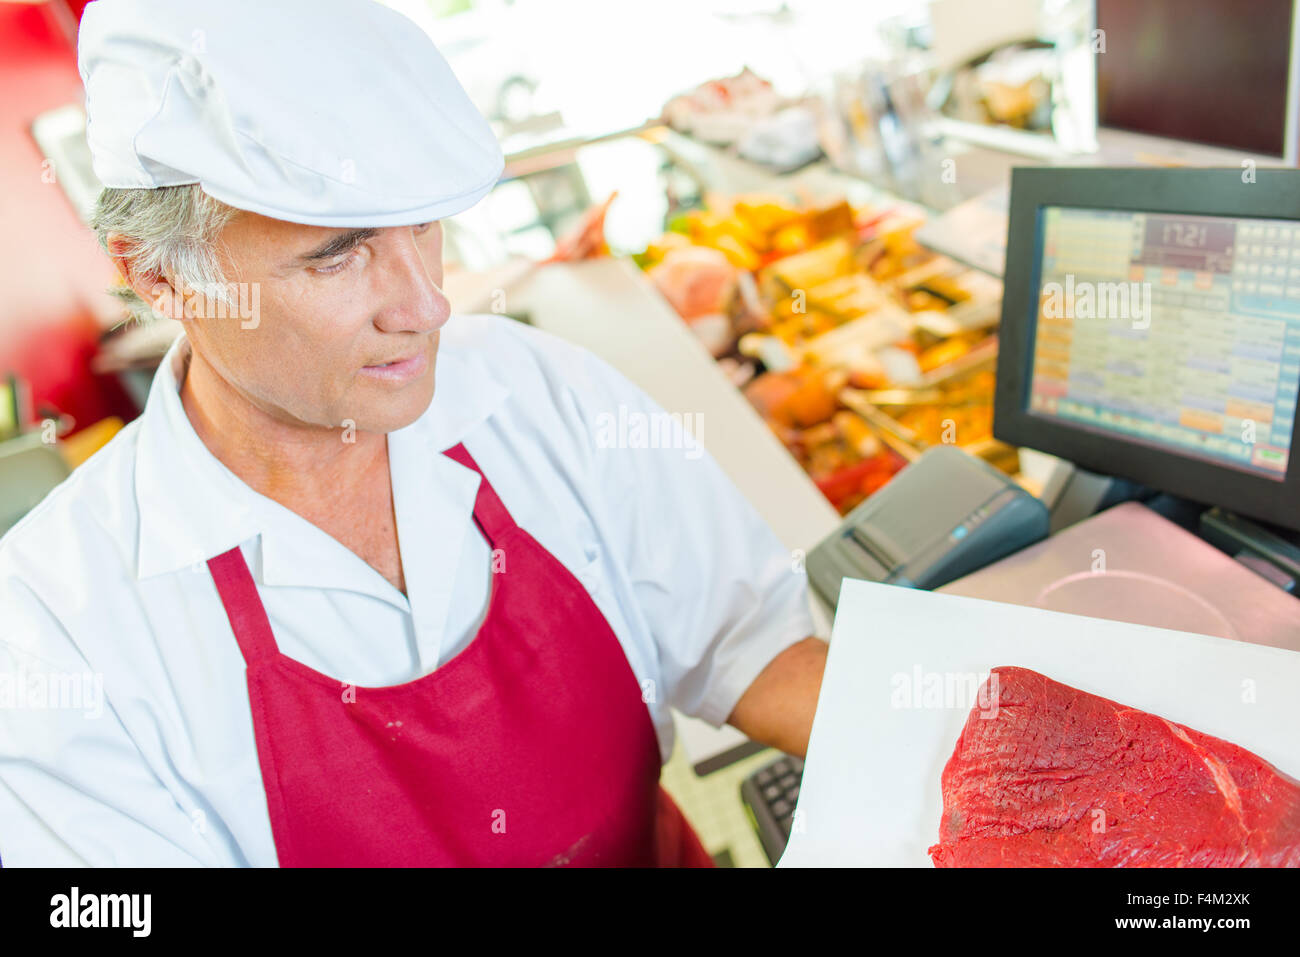 Butcher at work - Stock Image